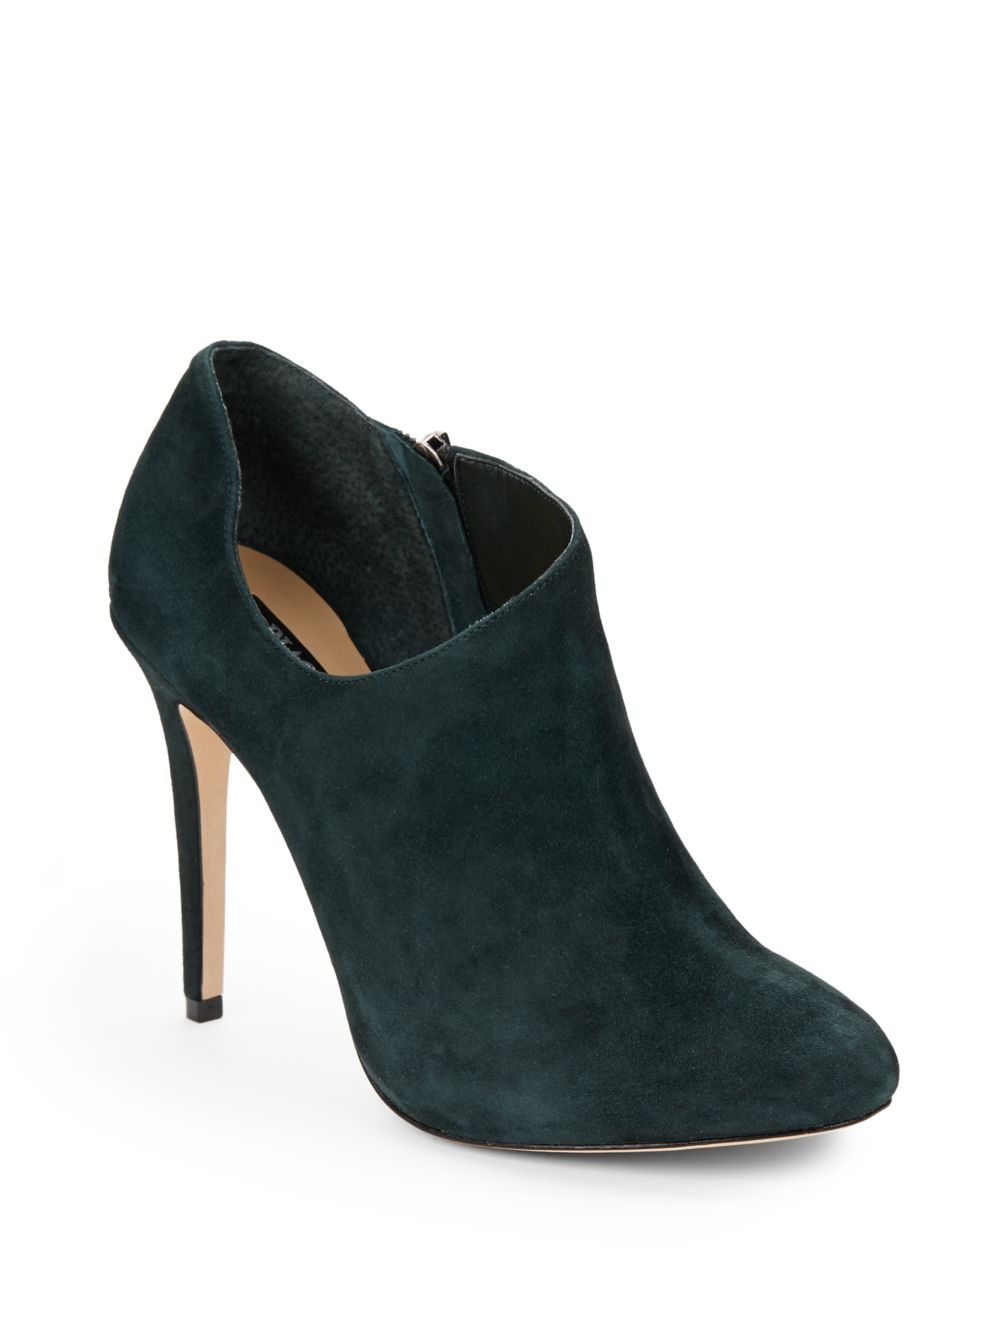 saks fifth avenue black brinda cutout suede ankle boots in